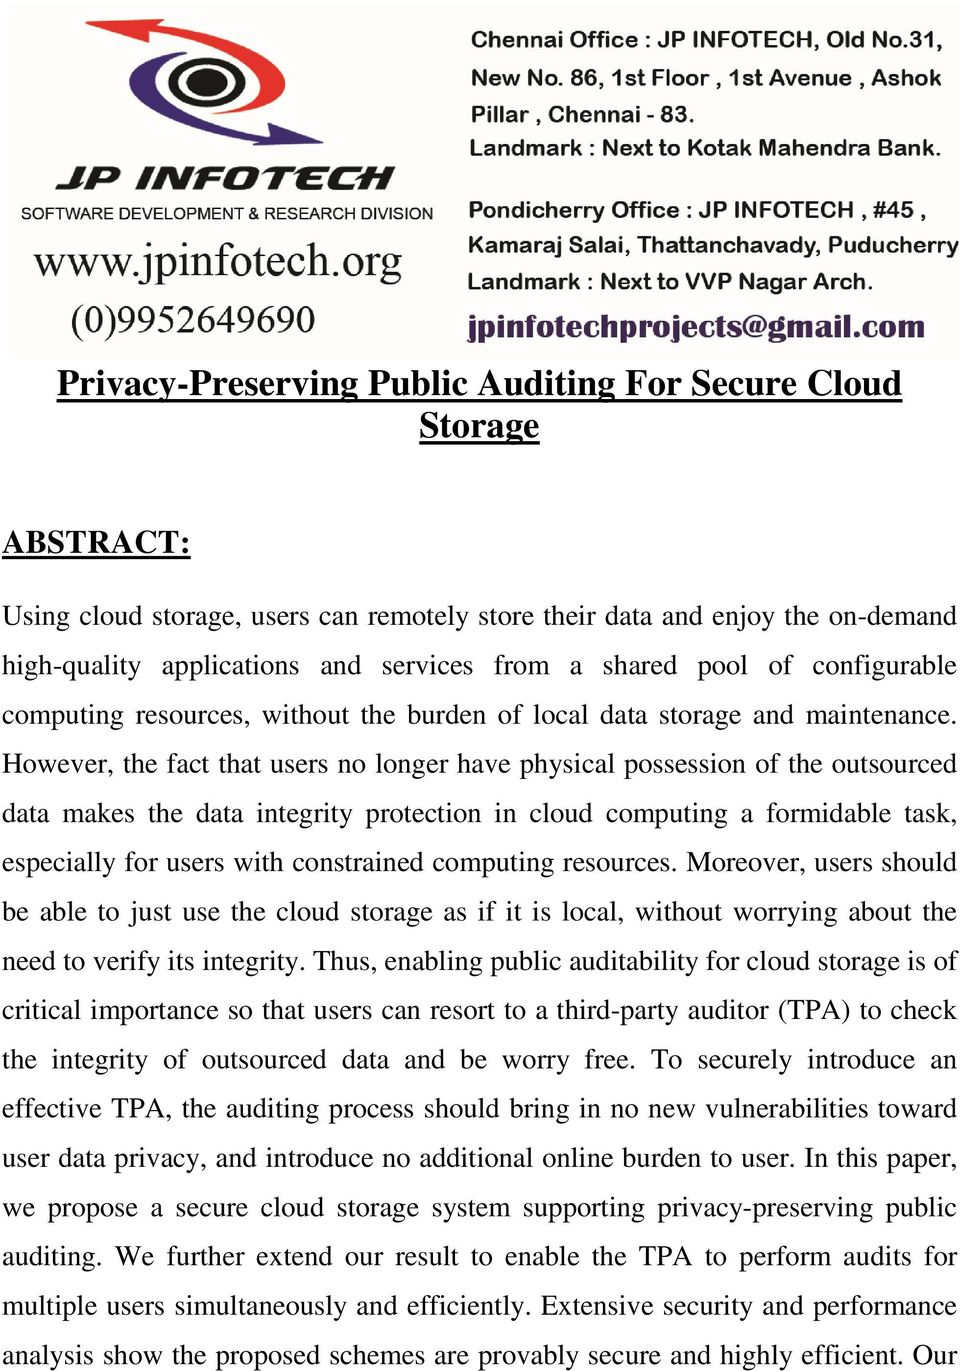 However, the fact that users no longer have physical possession of the outsourced data makes the data integrity protection in cloud computing a formidable task, especially for users with constrained